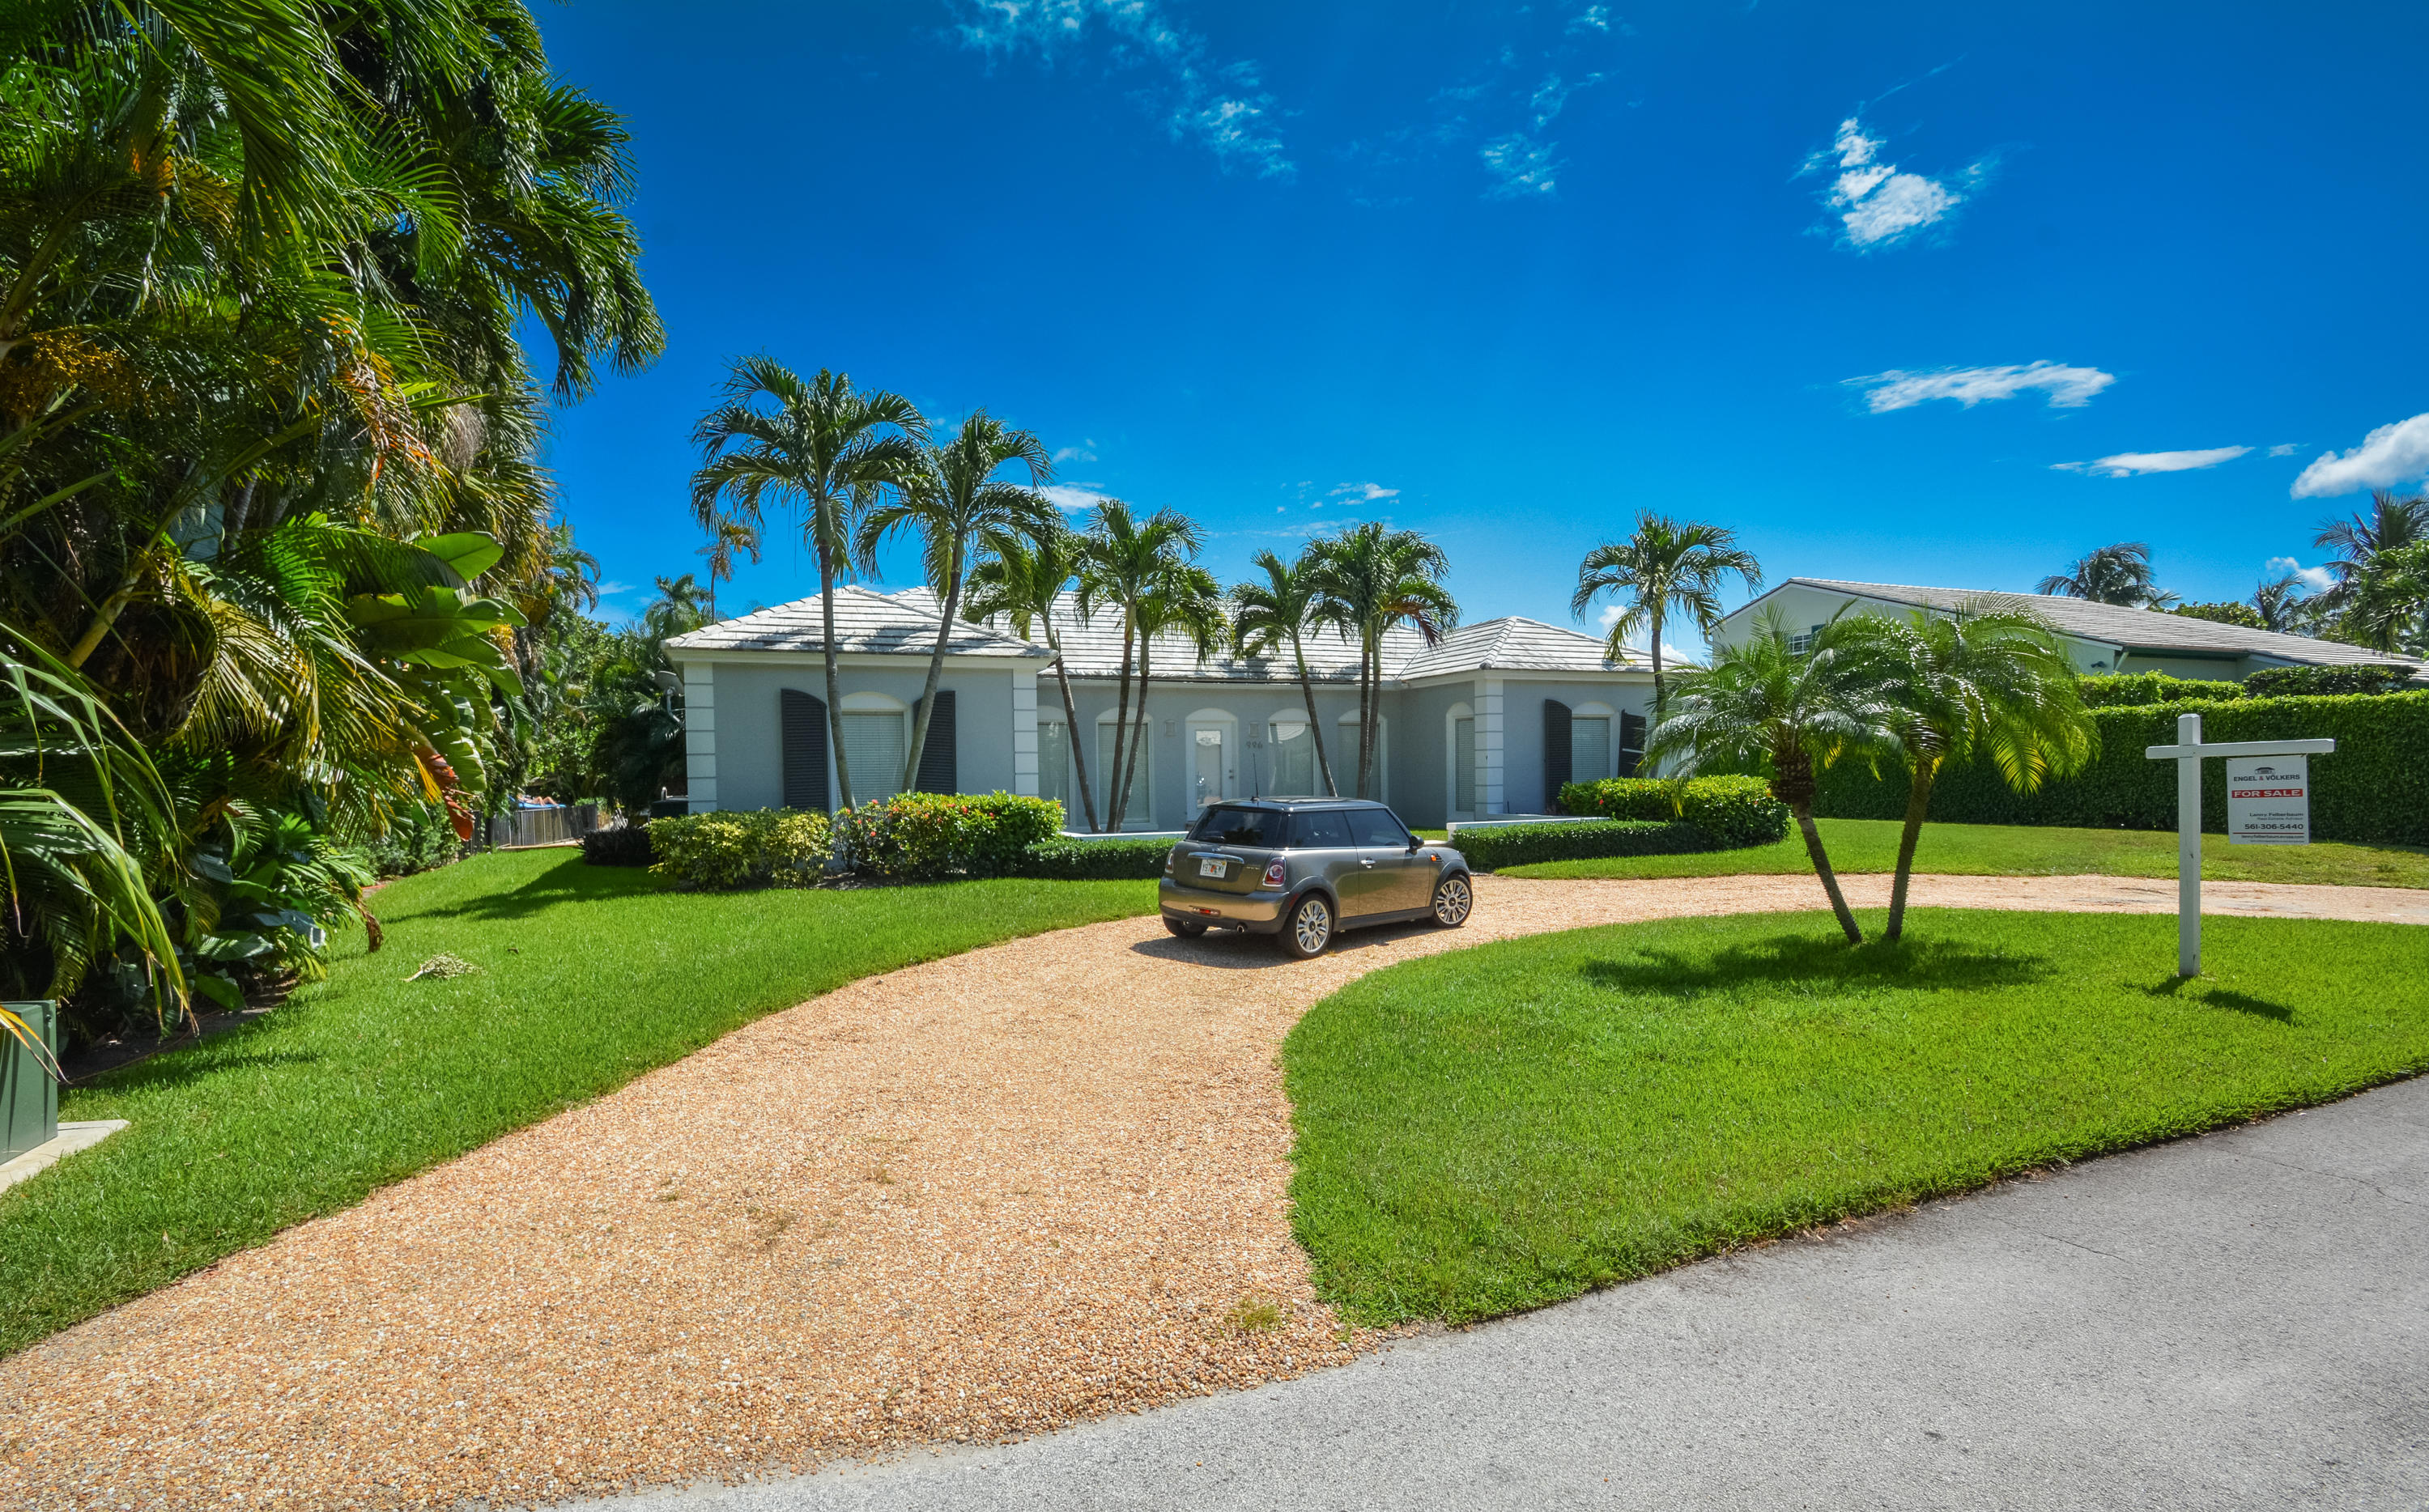 This coastal inspired waterfront home located on the border of Delray Beach and Gulfstream is situated on a 94x100 lot. Home features 3 beds, 2 baths, pool, dock and two car garage. The home boasts a retreat like setting just minutes from Atlantic Avenue and the Beach.